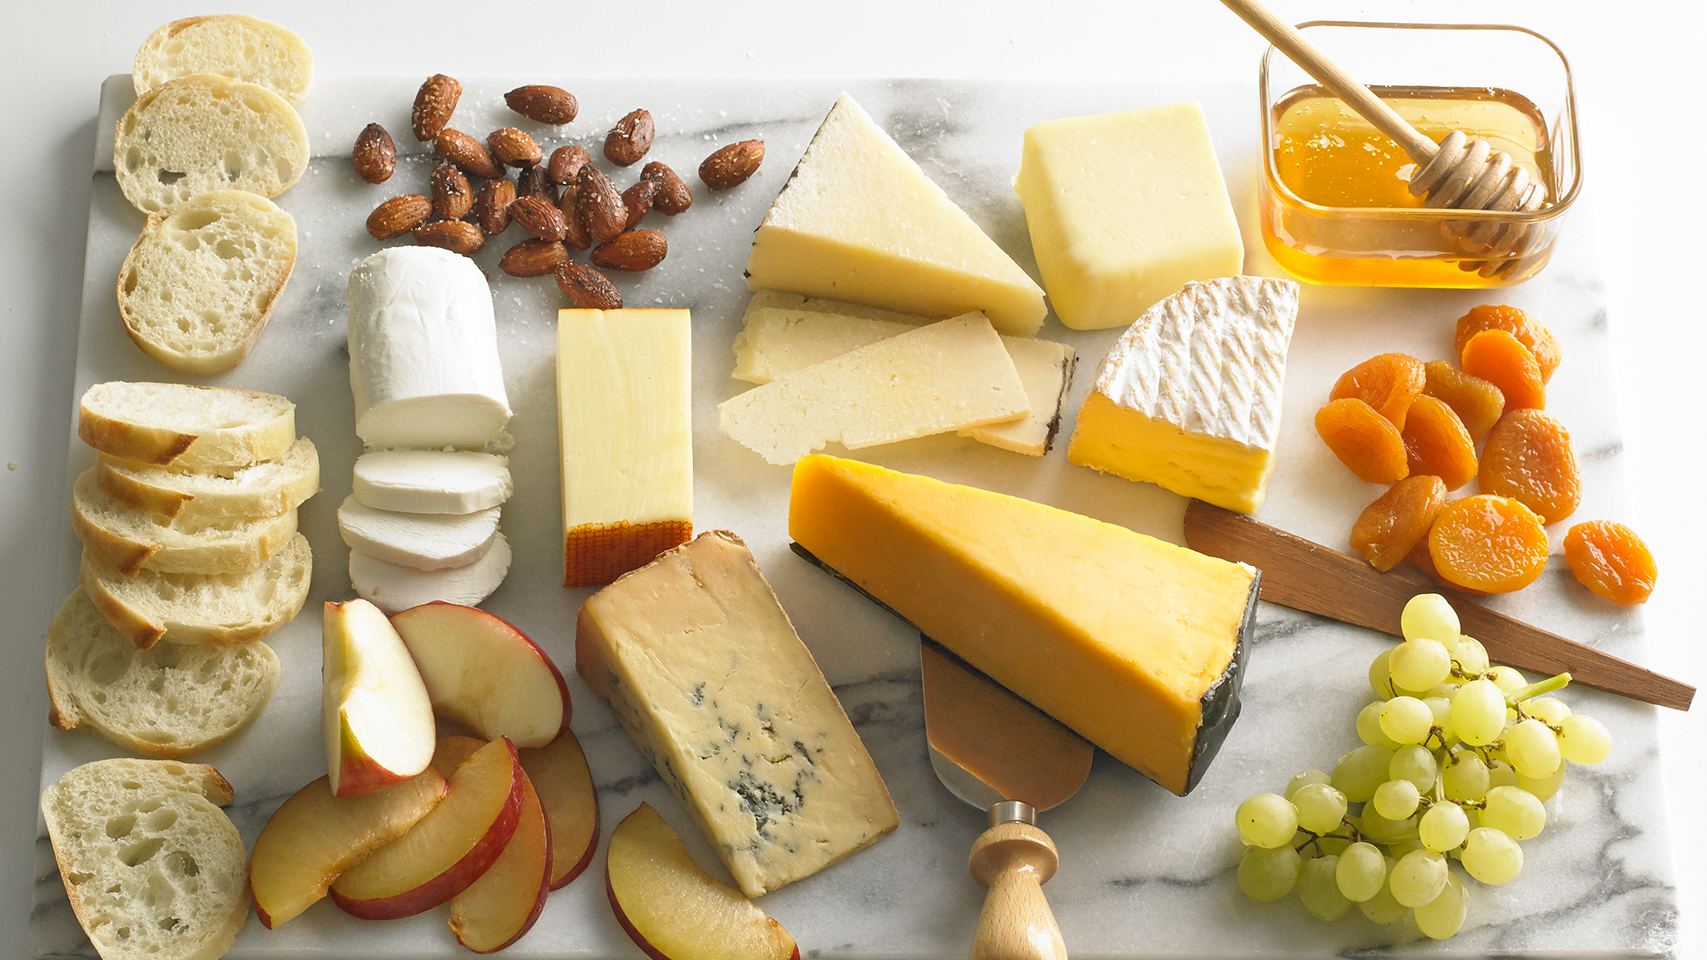 cheese-board-102180718.jpg